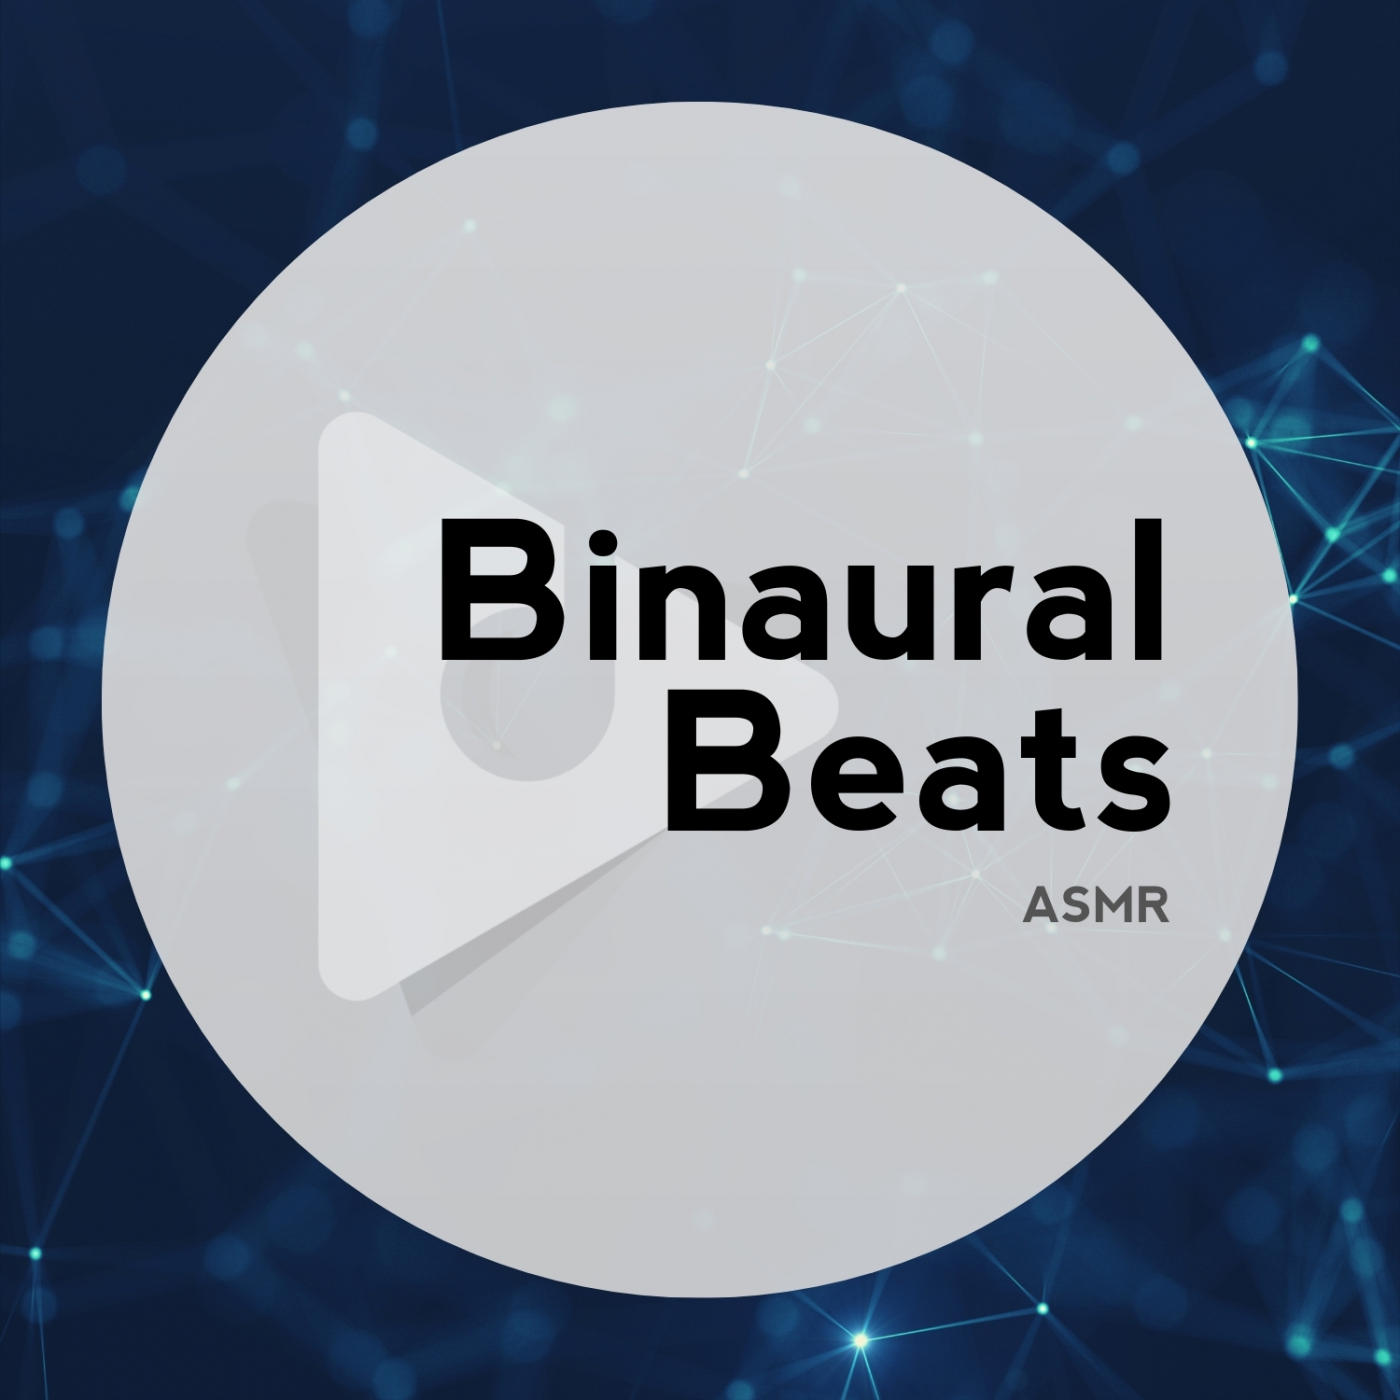 Binaural Beats ASMR